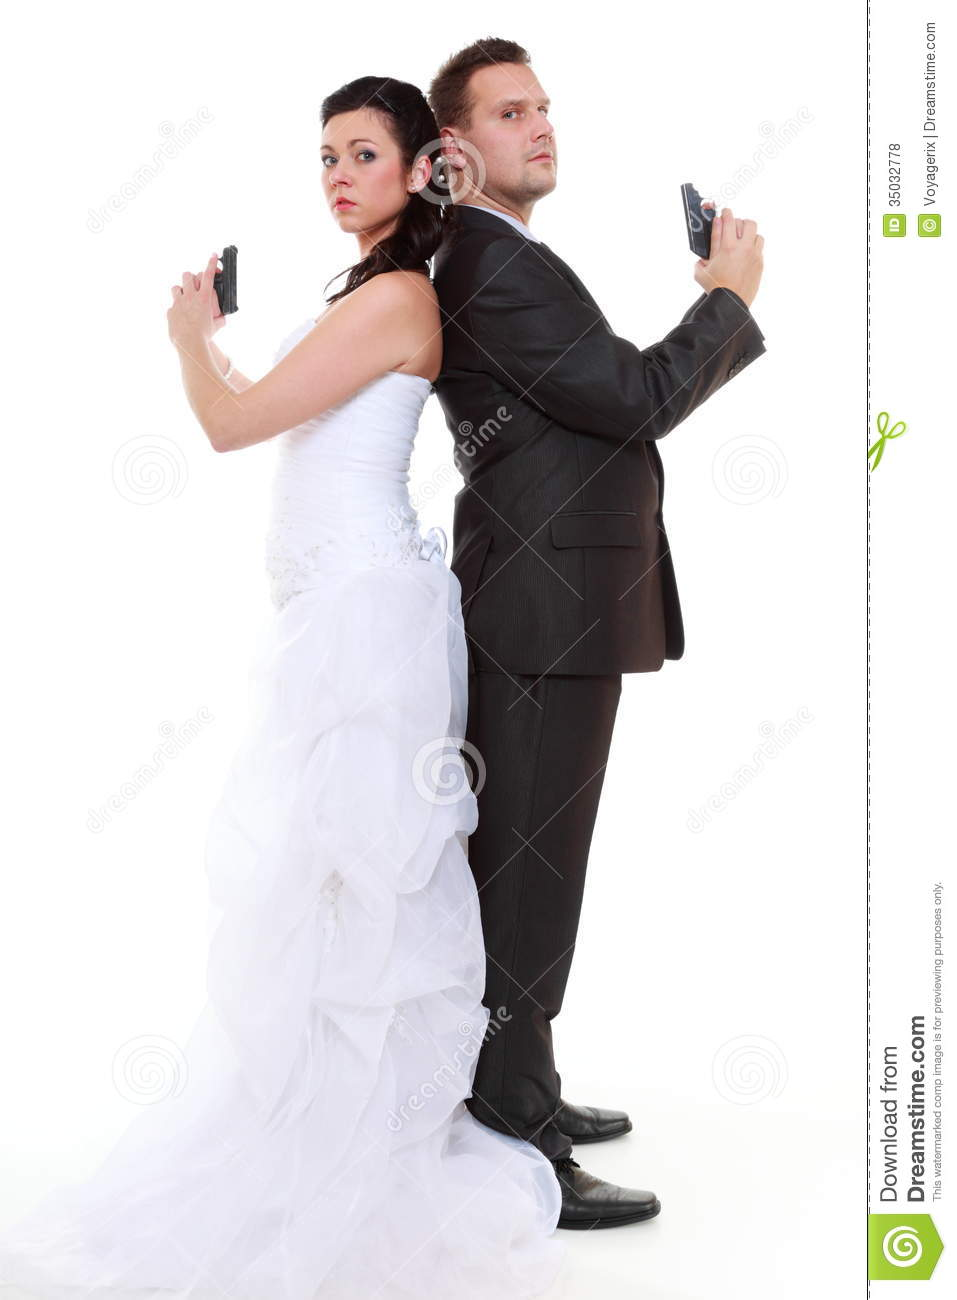 Credit Cards For Bad Credit >> Married Couple Problem Discord, Bride Groom With Gun ...